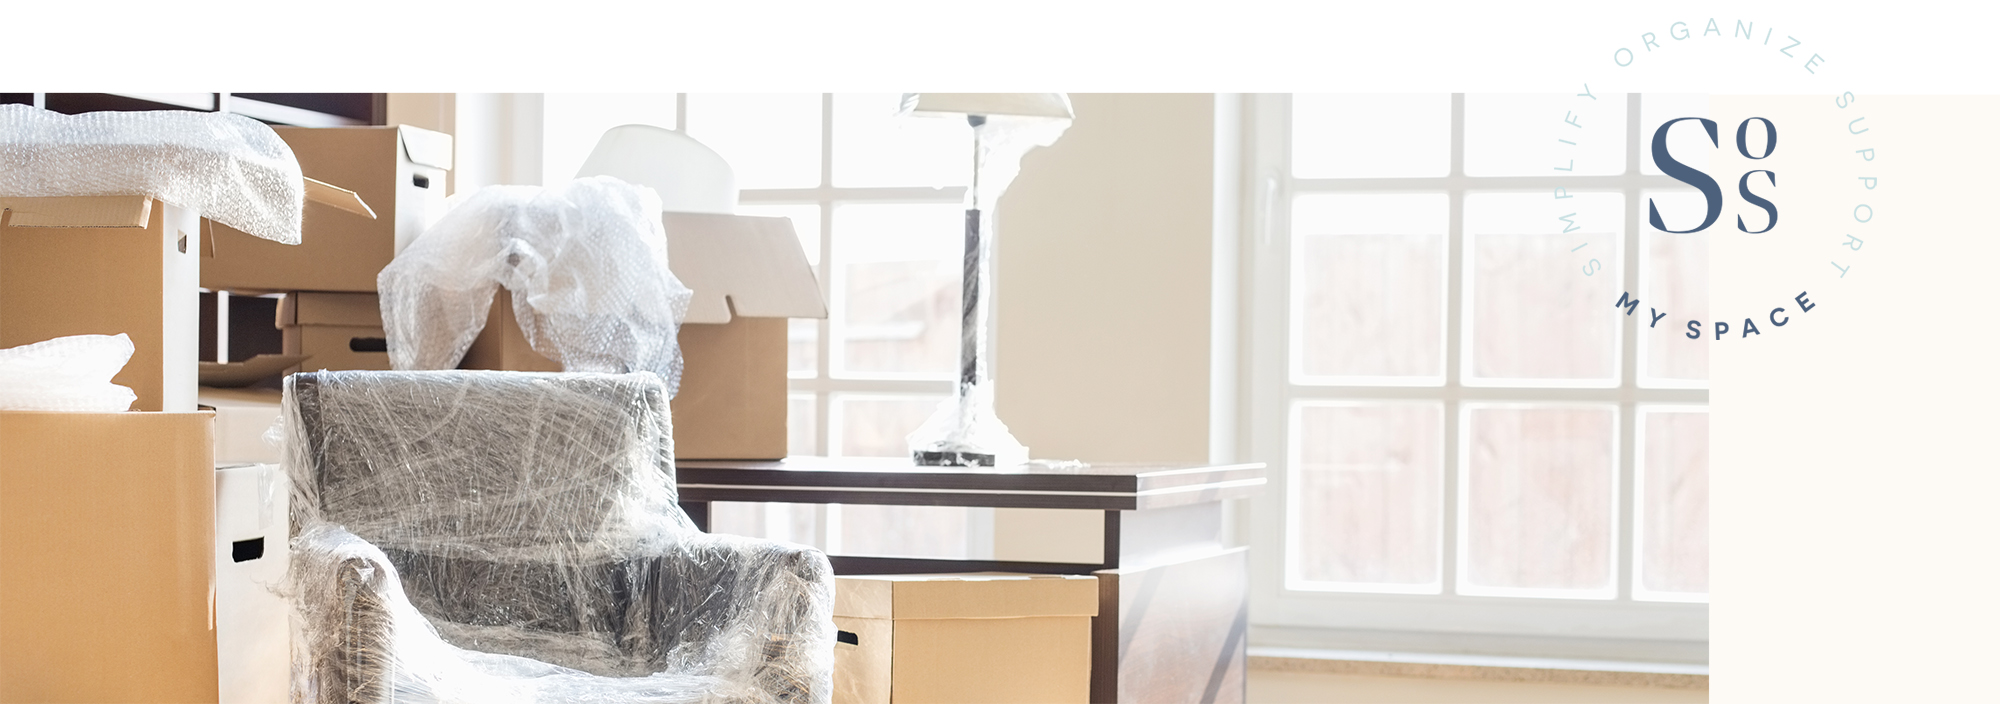 Professional Organizer for Packing, Downsizing & Moving